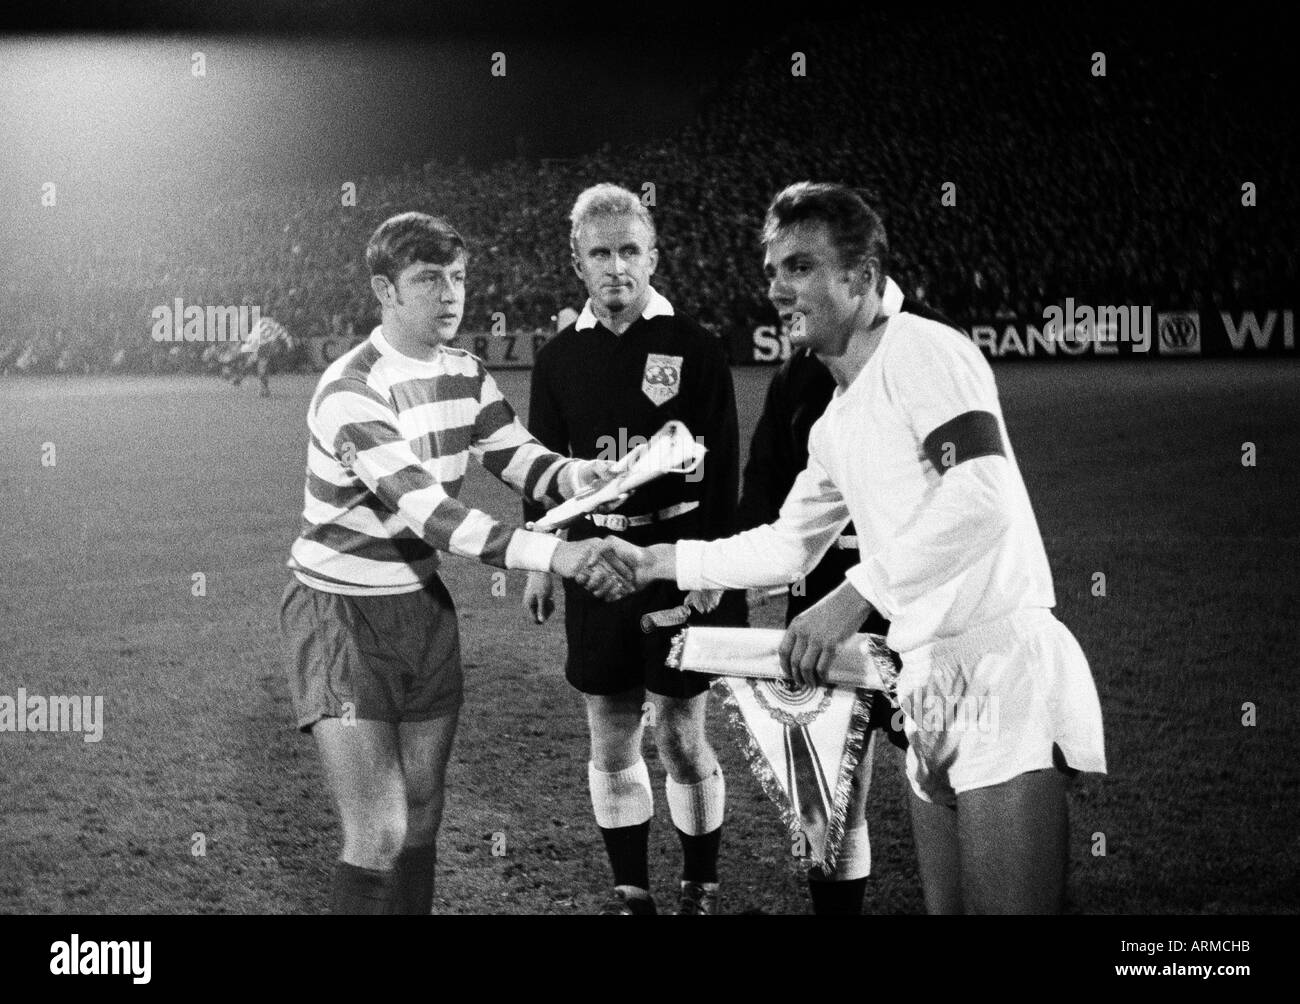 football, European Cup Winners Cup, first qualifying round, return leg, 1969/1970, FC Schalke 04 versus Shamrock Rovers 3:0, Glueckaufkampfbahn Stadium in Gelsenkirchen, welcome and toss-up, in the middle a referee assistant and referee Kazakov (Soviet Un - Stock Image